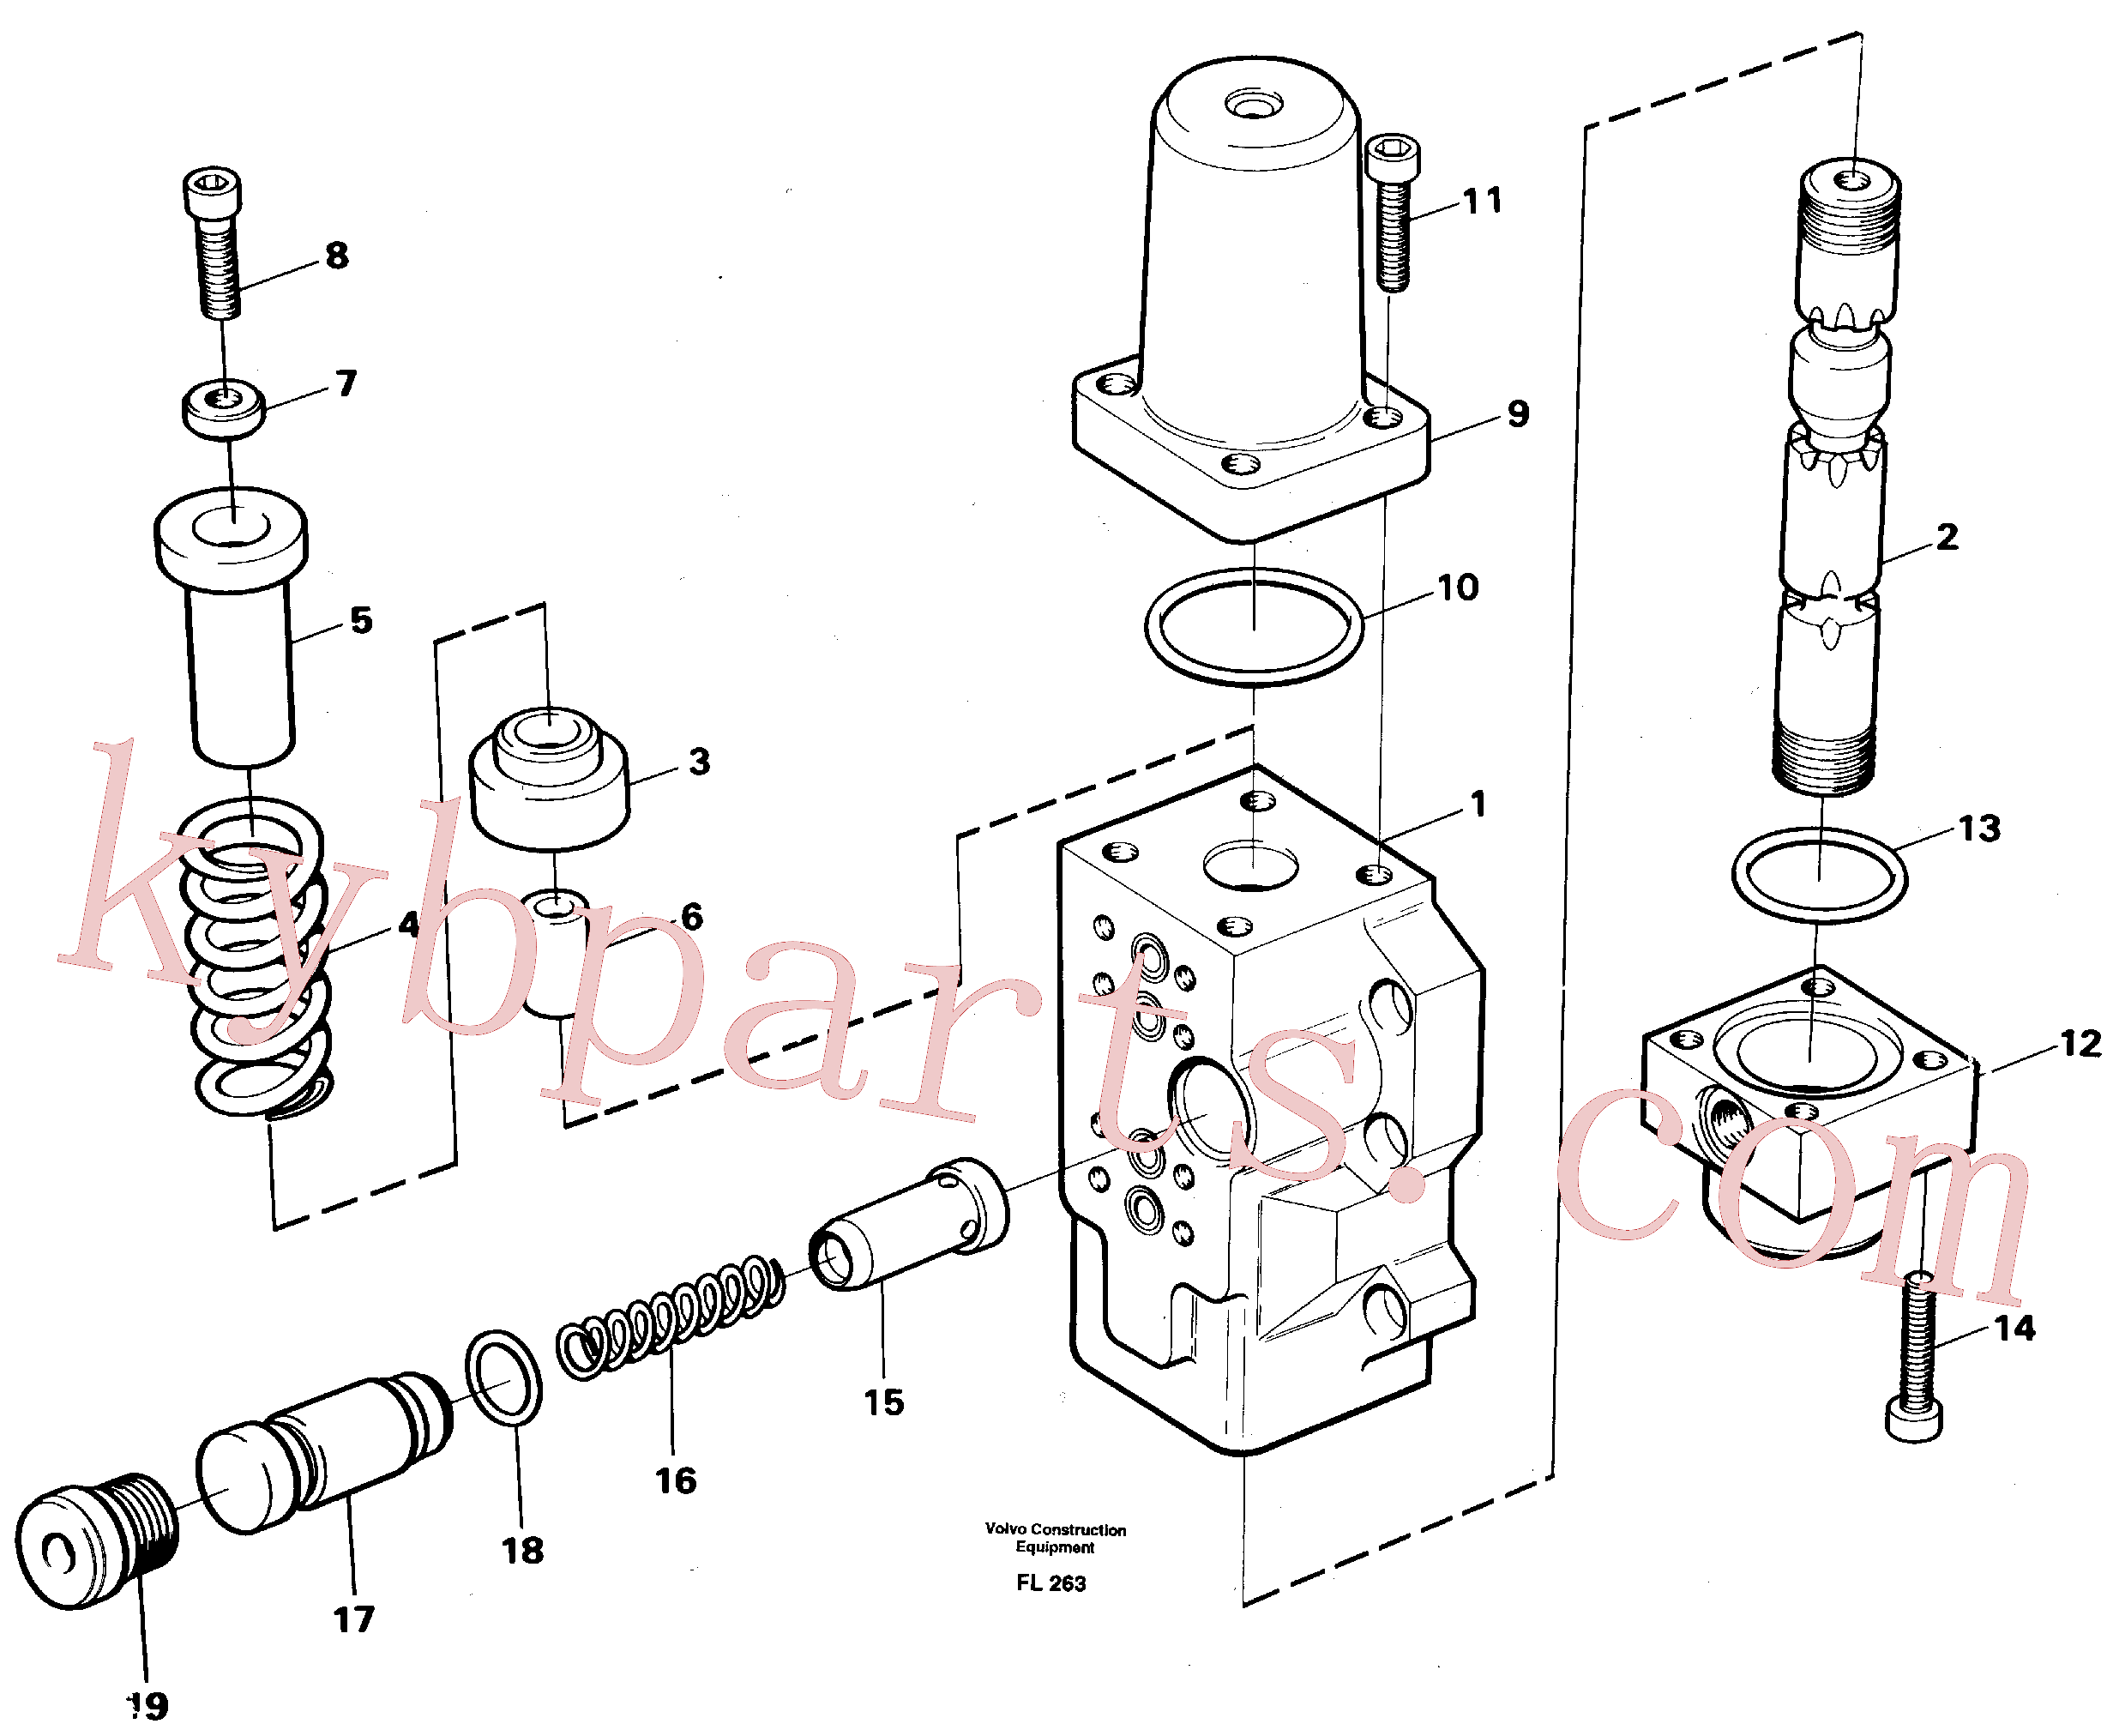 VOE14012817 for Volvo Four-way valve, bucket primary(FL263 assembly)